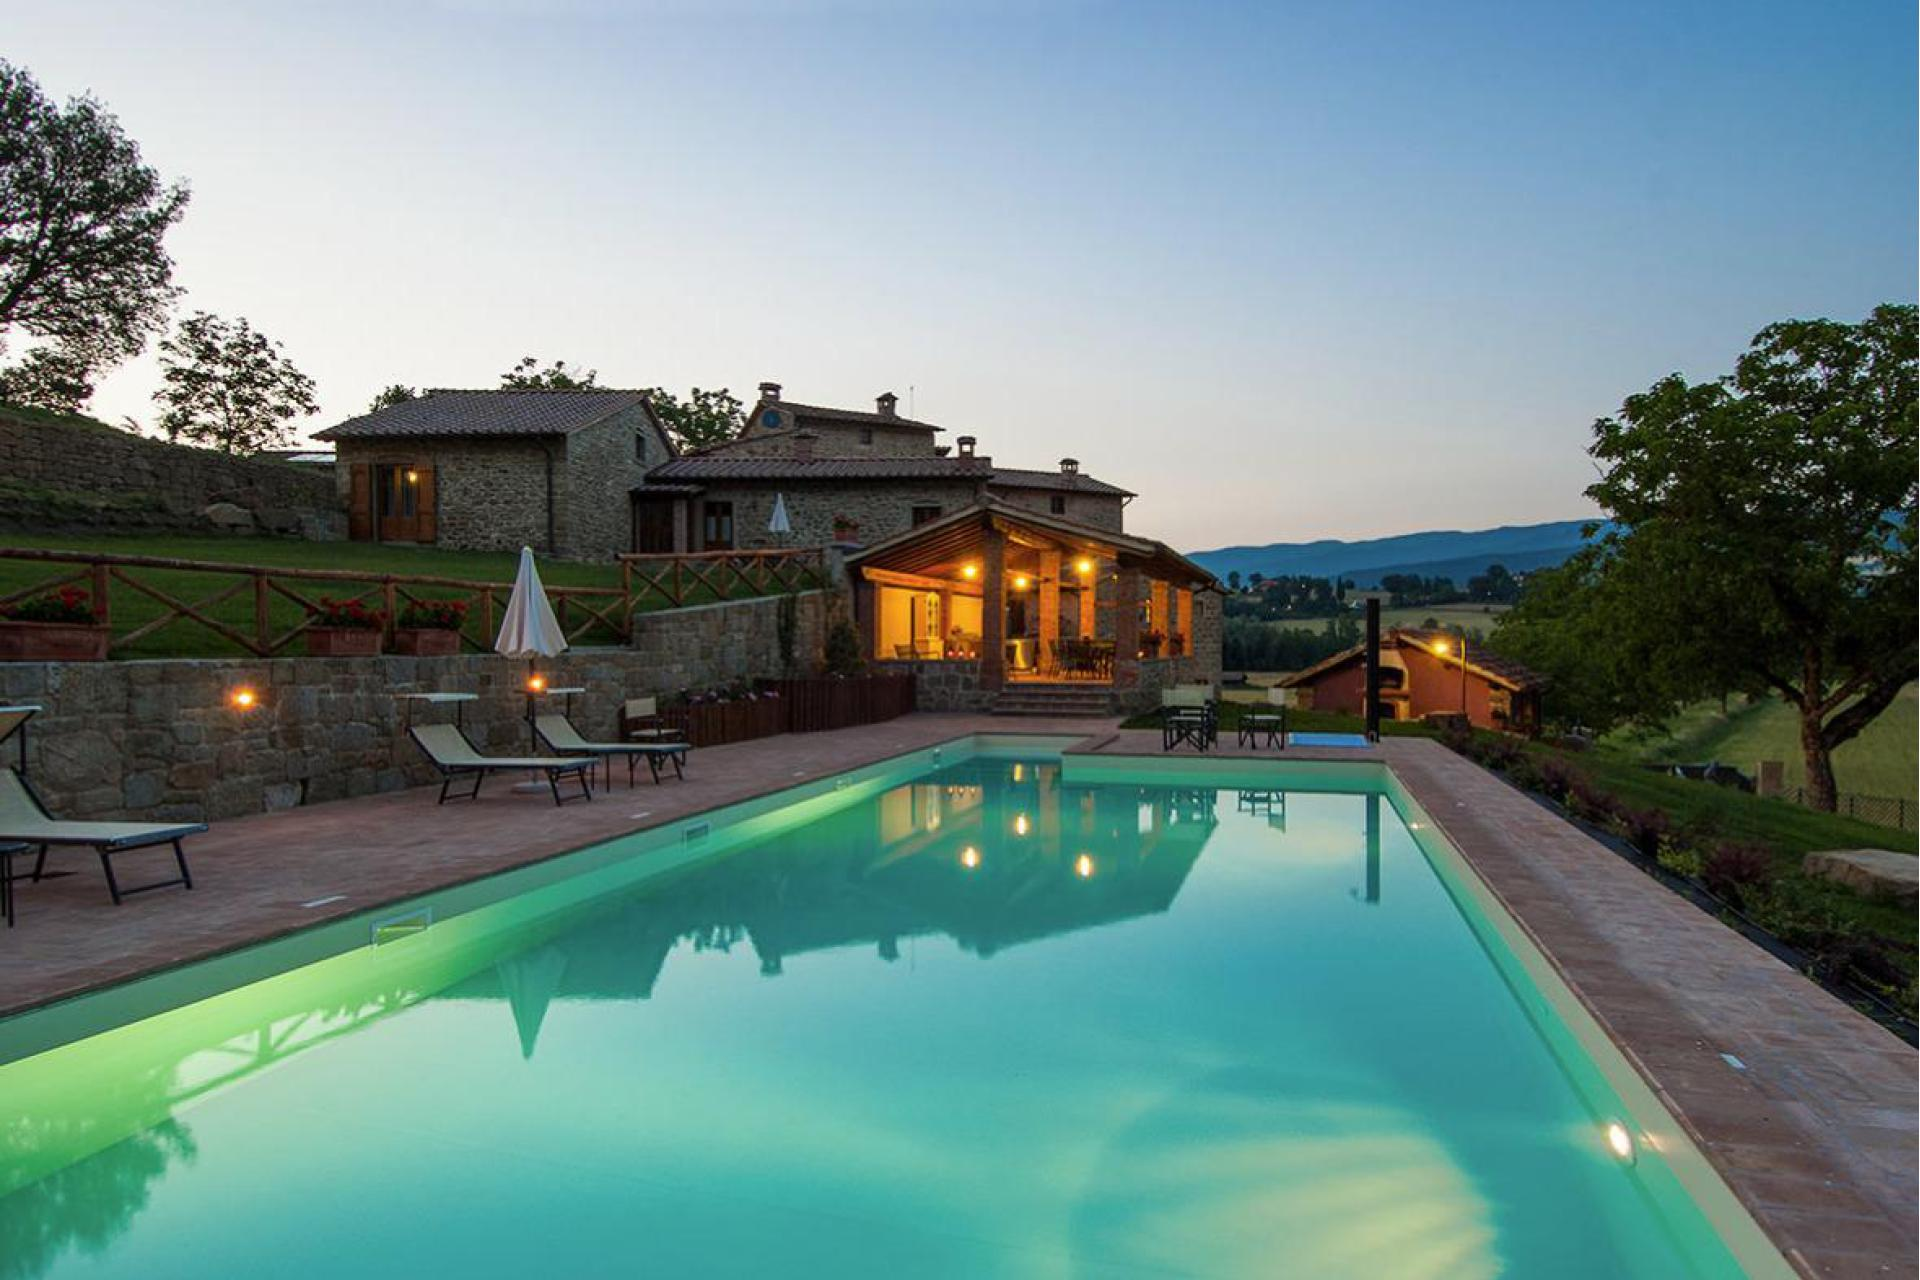 Agriturismo Tuscany Child-friendly agriturismo in Tuscany close to the beach